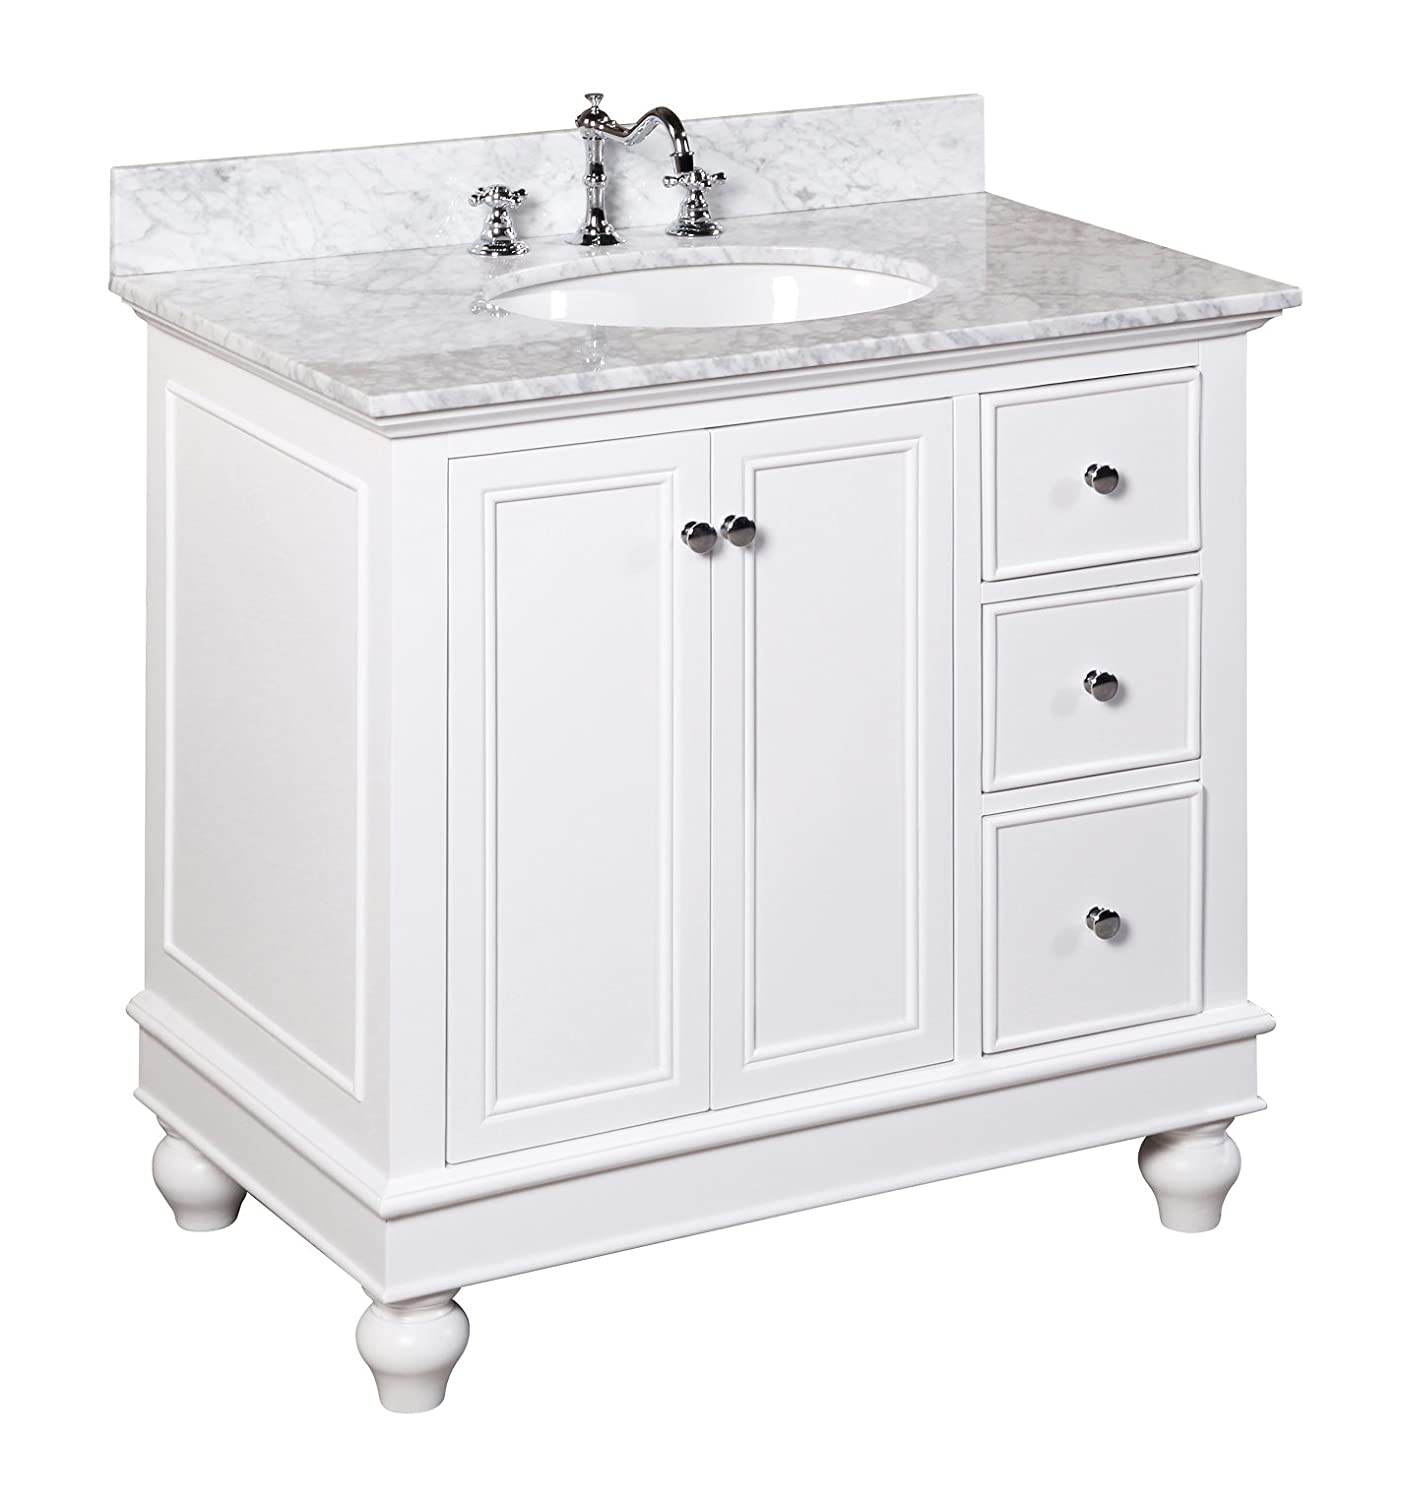 Kitchen Bath Collection KBC2236WTCARR Bella Bathroom Vanity With Marble  Countertop, Cabinet With Soft Close Function And Undermount Ceramic Sink,  ...